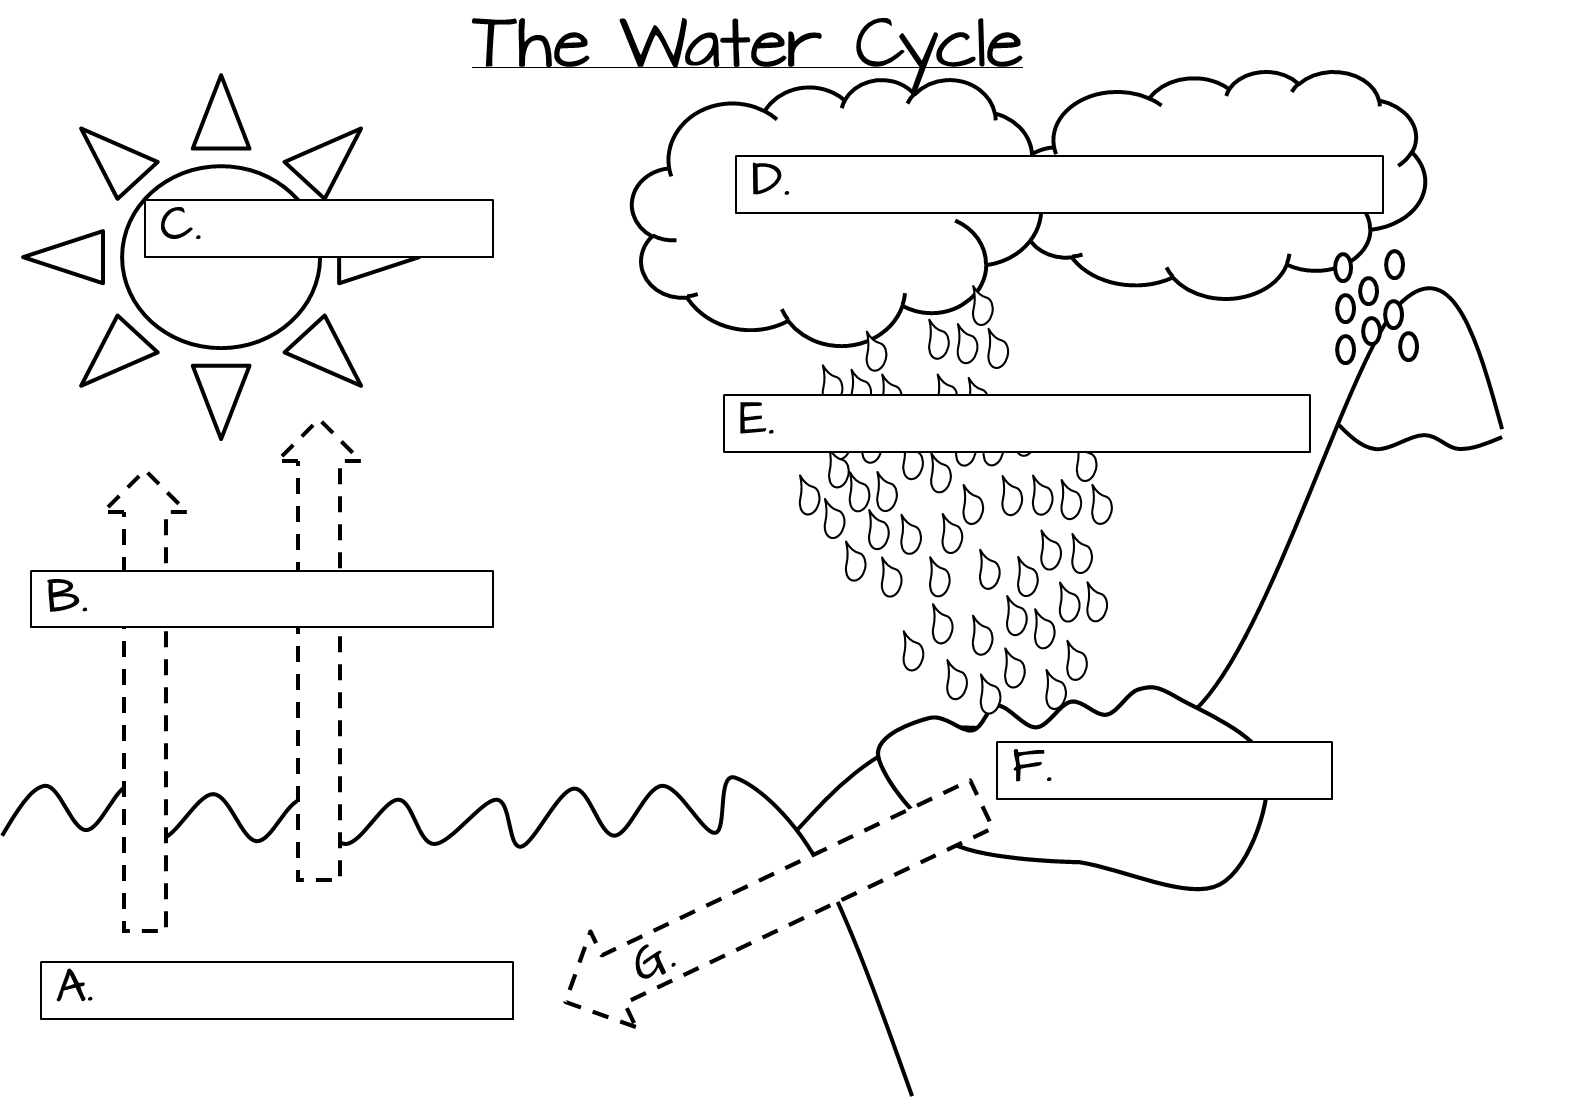 School worksheet clipart clipart freeuse download Water Cycle Foldable | Pinterest | Elementary schools, School and ... clipart freeuse download